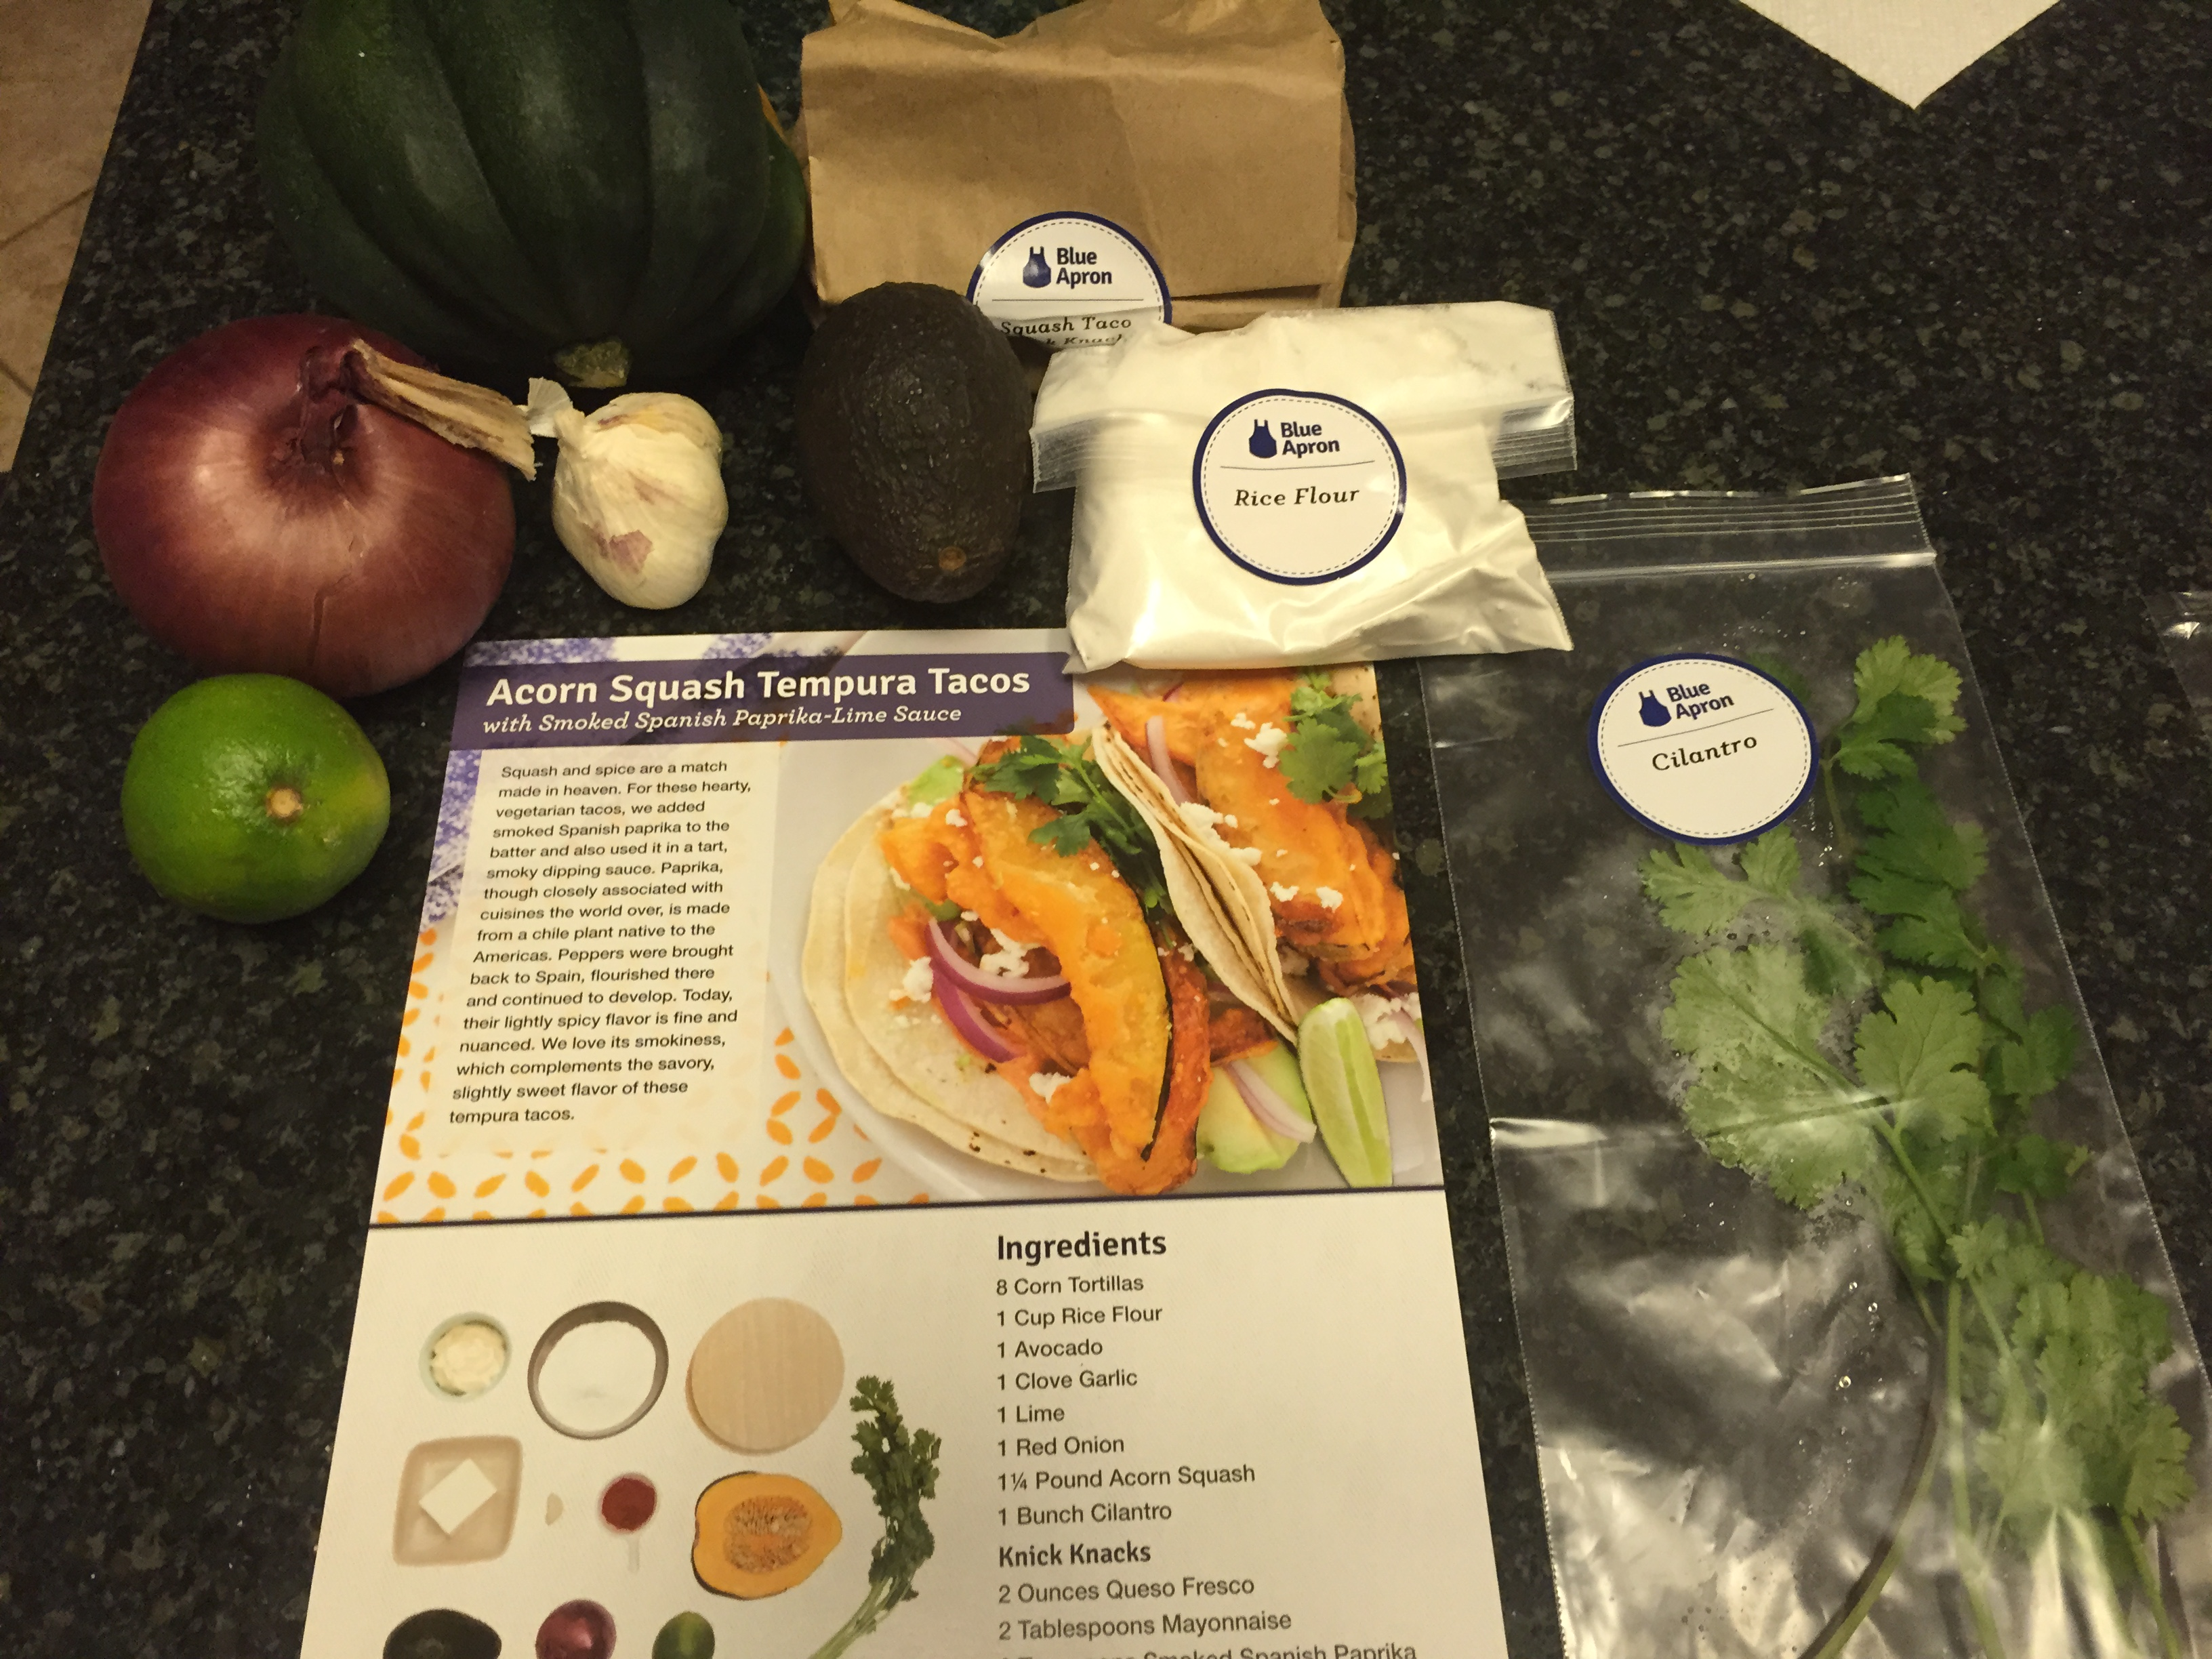 Blue apron nutrition - I Immediately Unpacked The Box And Divided My Ingredients By Meal I Love The Single Serving Items One Sprig Of Rosemary A Handful Of Chives